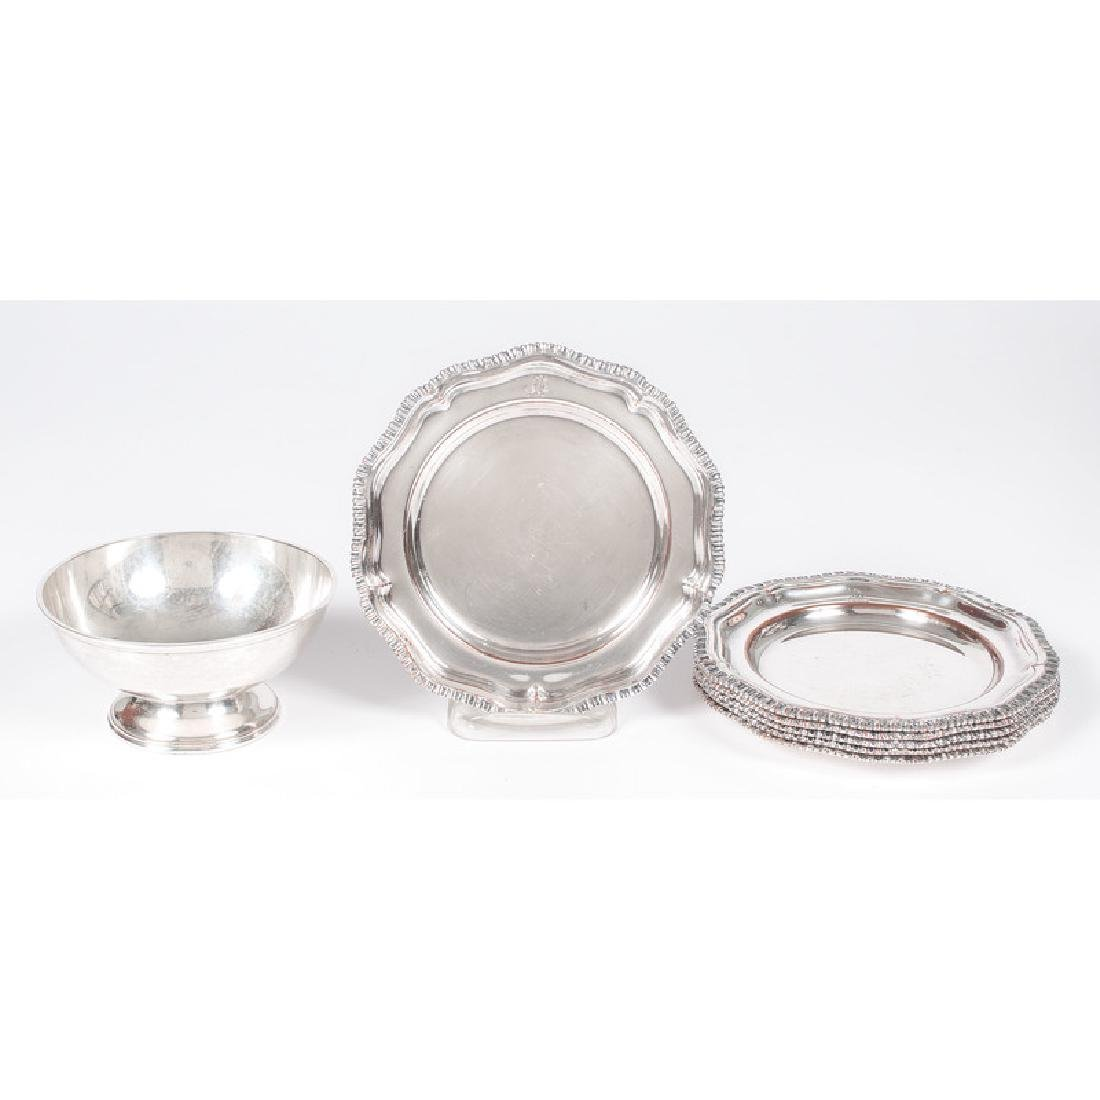 Sheffield Plate Bread and Butter Plates, Plus